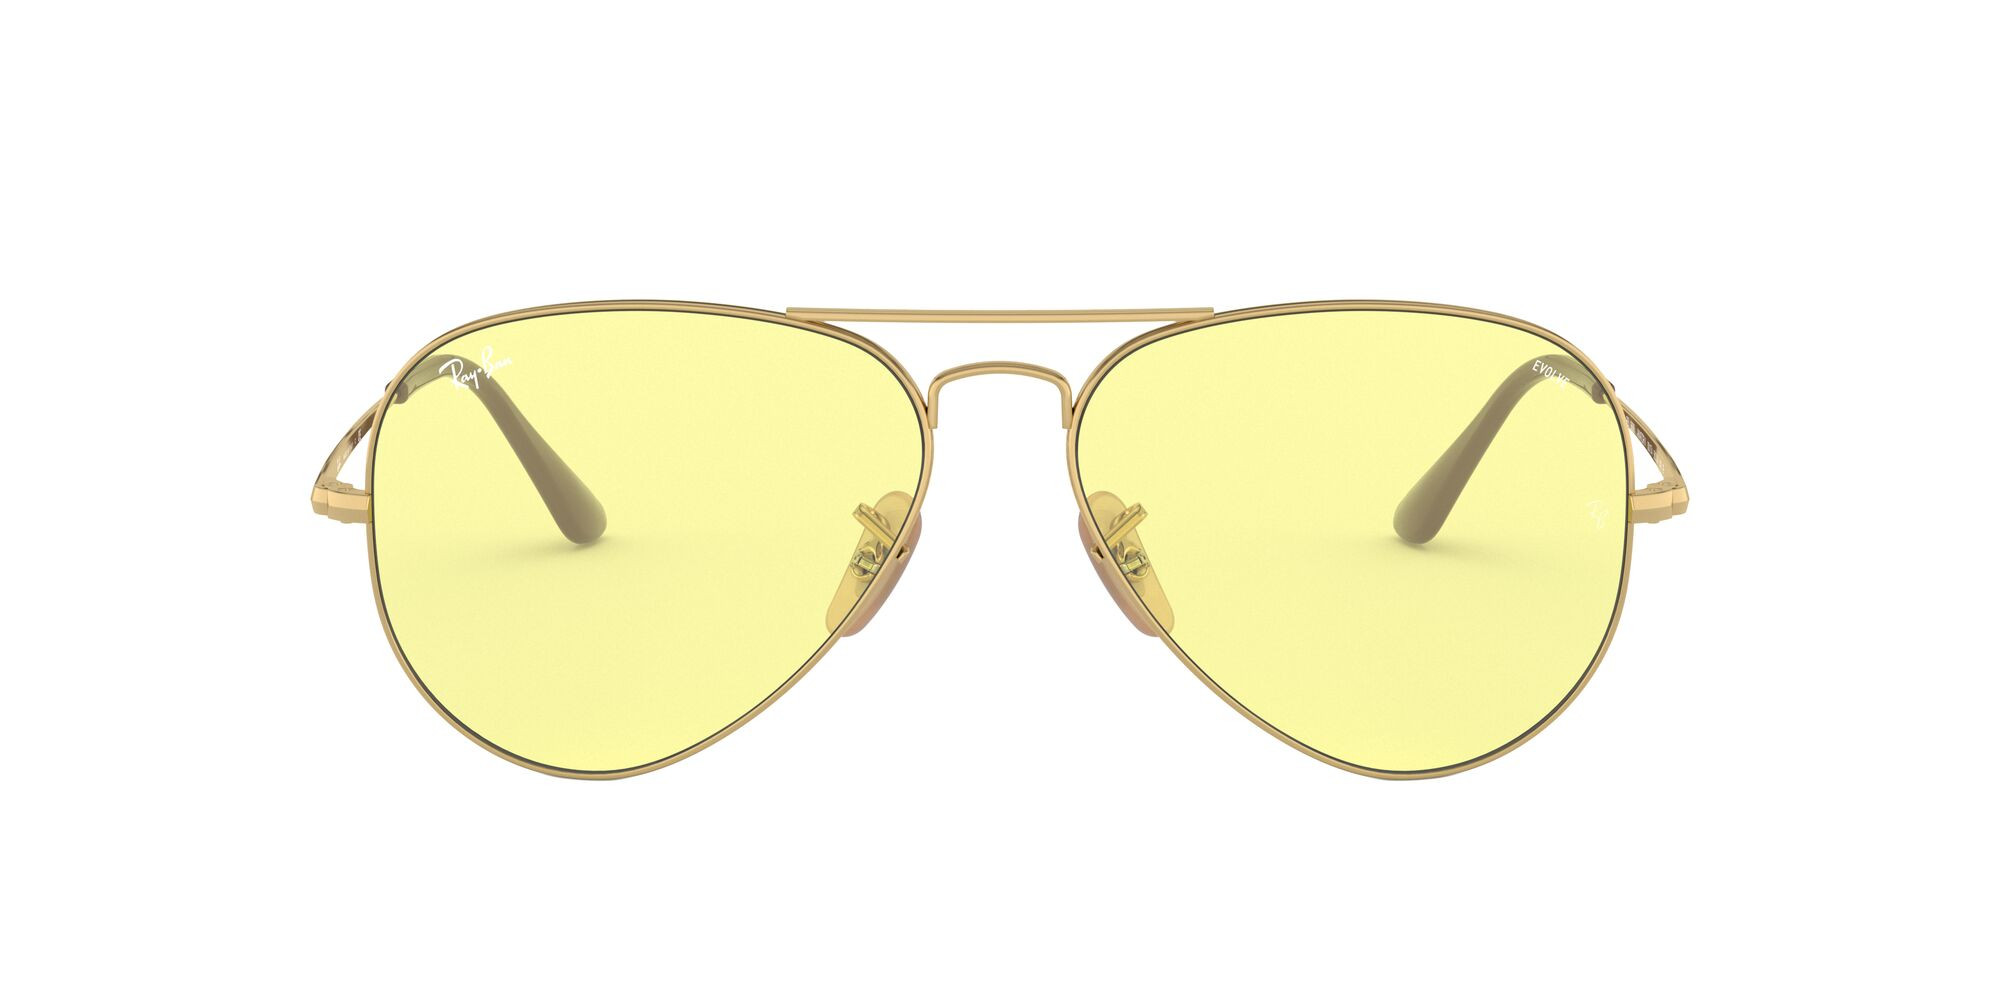 Front Ray-Ban Ray-Ban 0RB3689 001/T4 58/14 Goud/Geel